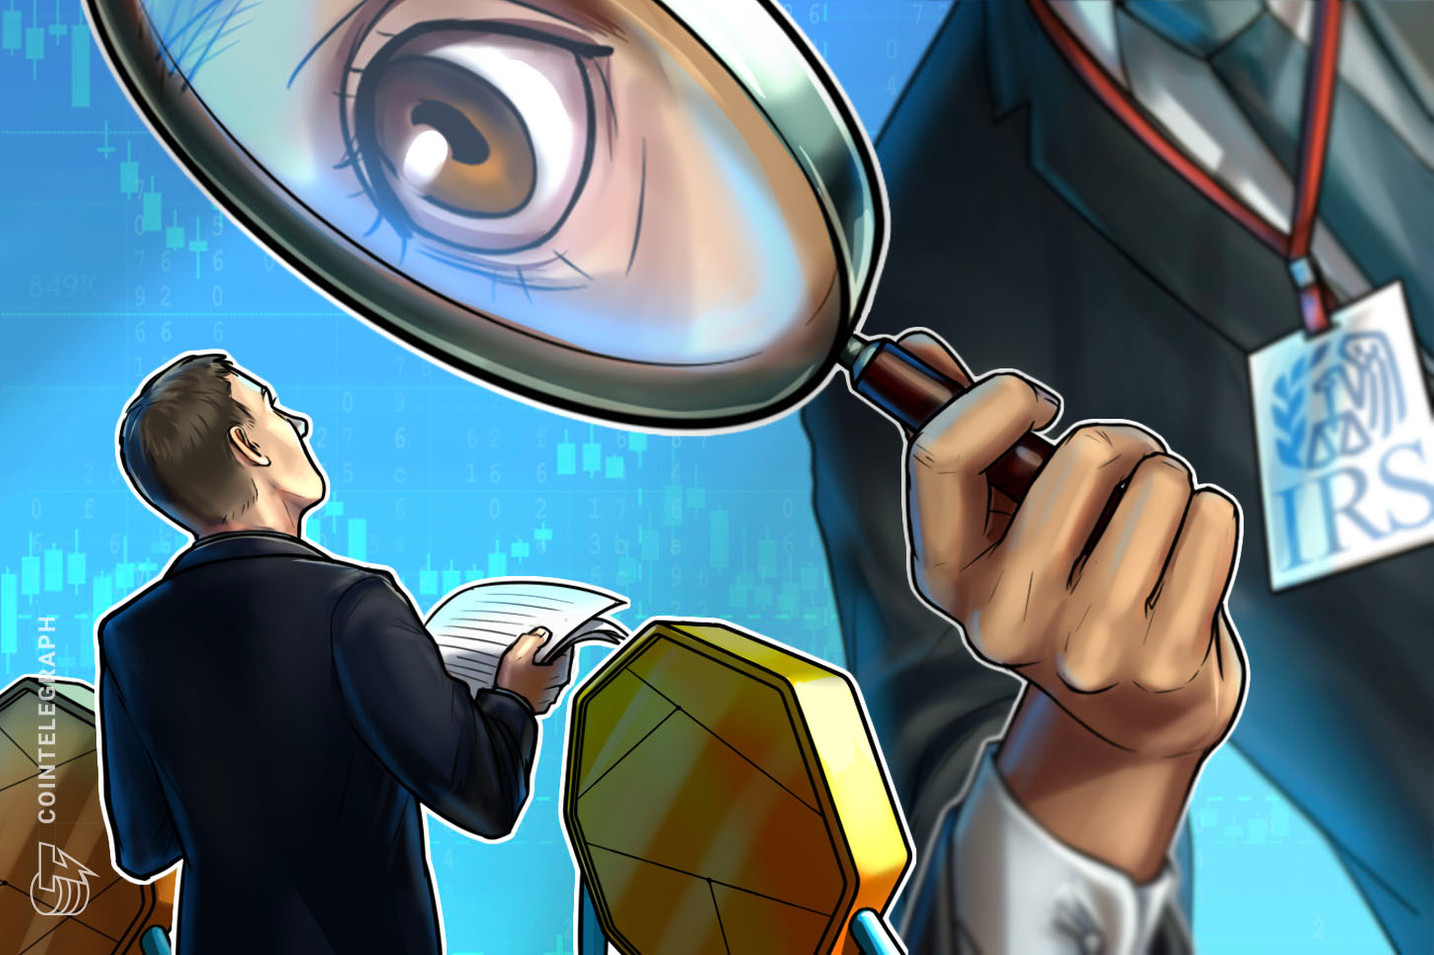 IRS Plans to Ask Every American Worker if They Used Crypto in 2020